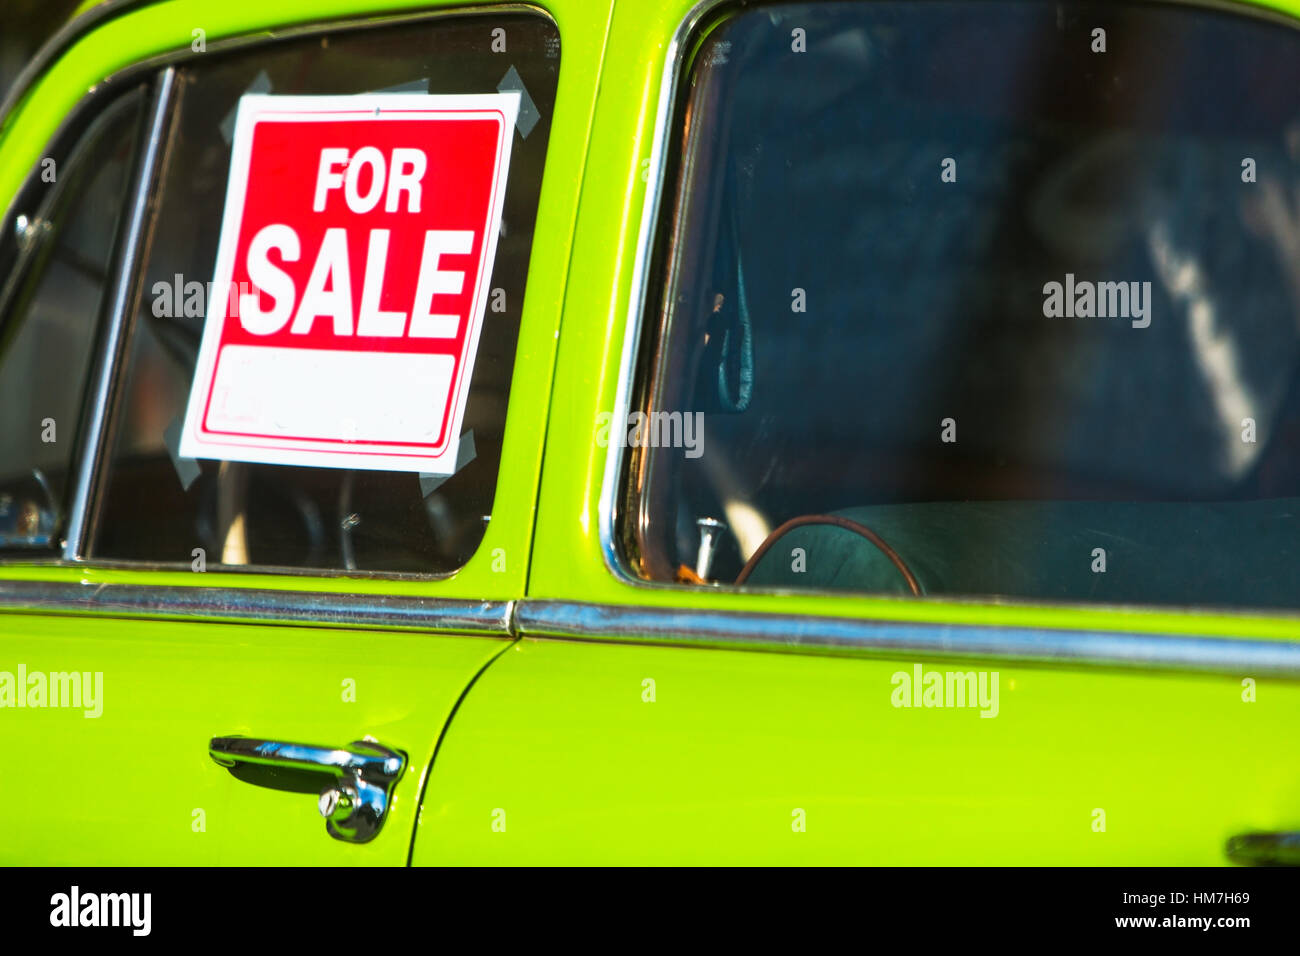 For Sale Sign On Car Window  Free For Sale Signs For Cars